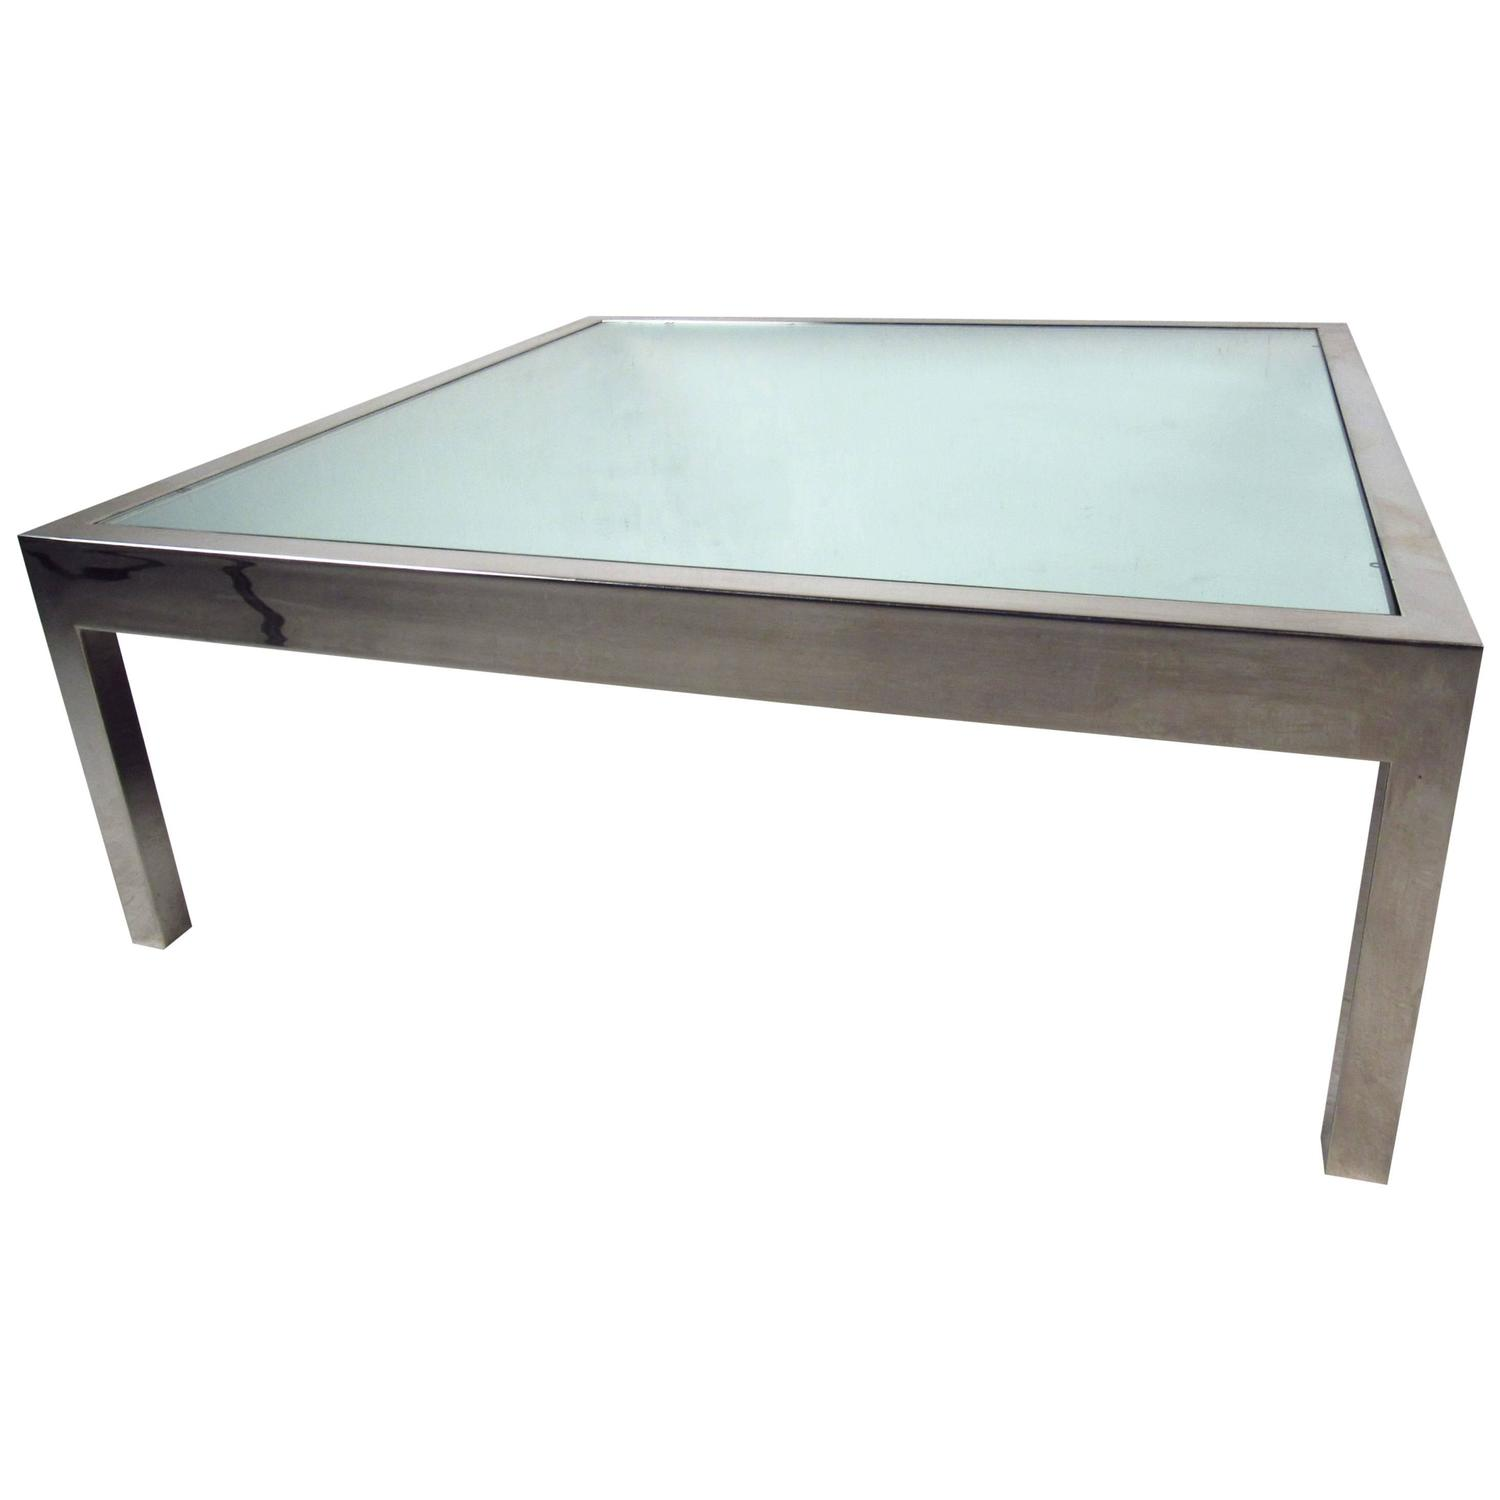 Unique Midcentury Mirrored Glass And Chrome Coffee Table For Sale At 1stdibs